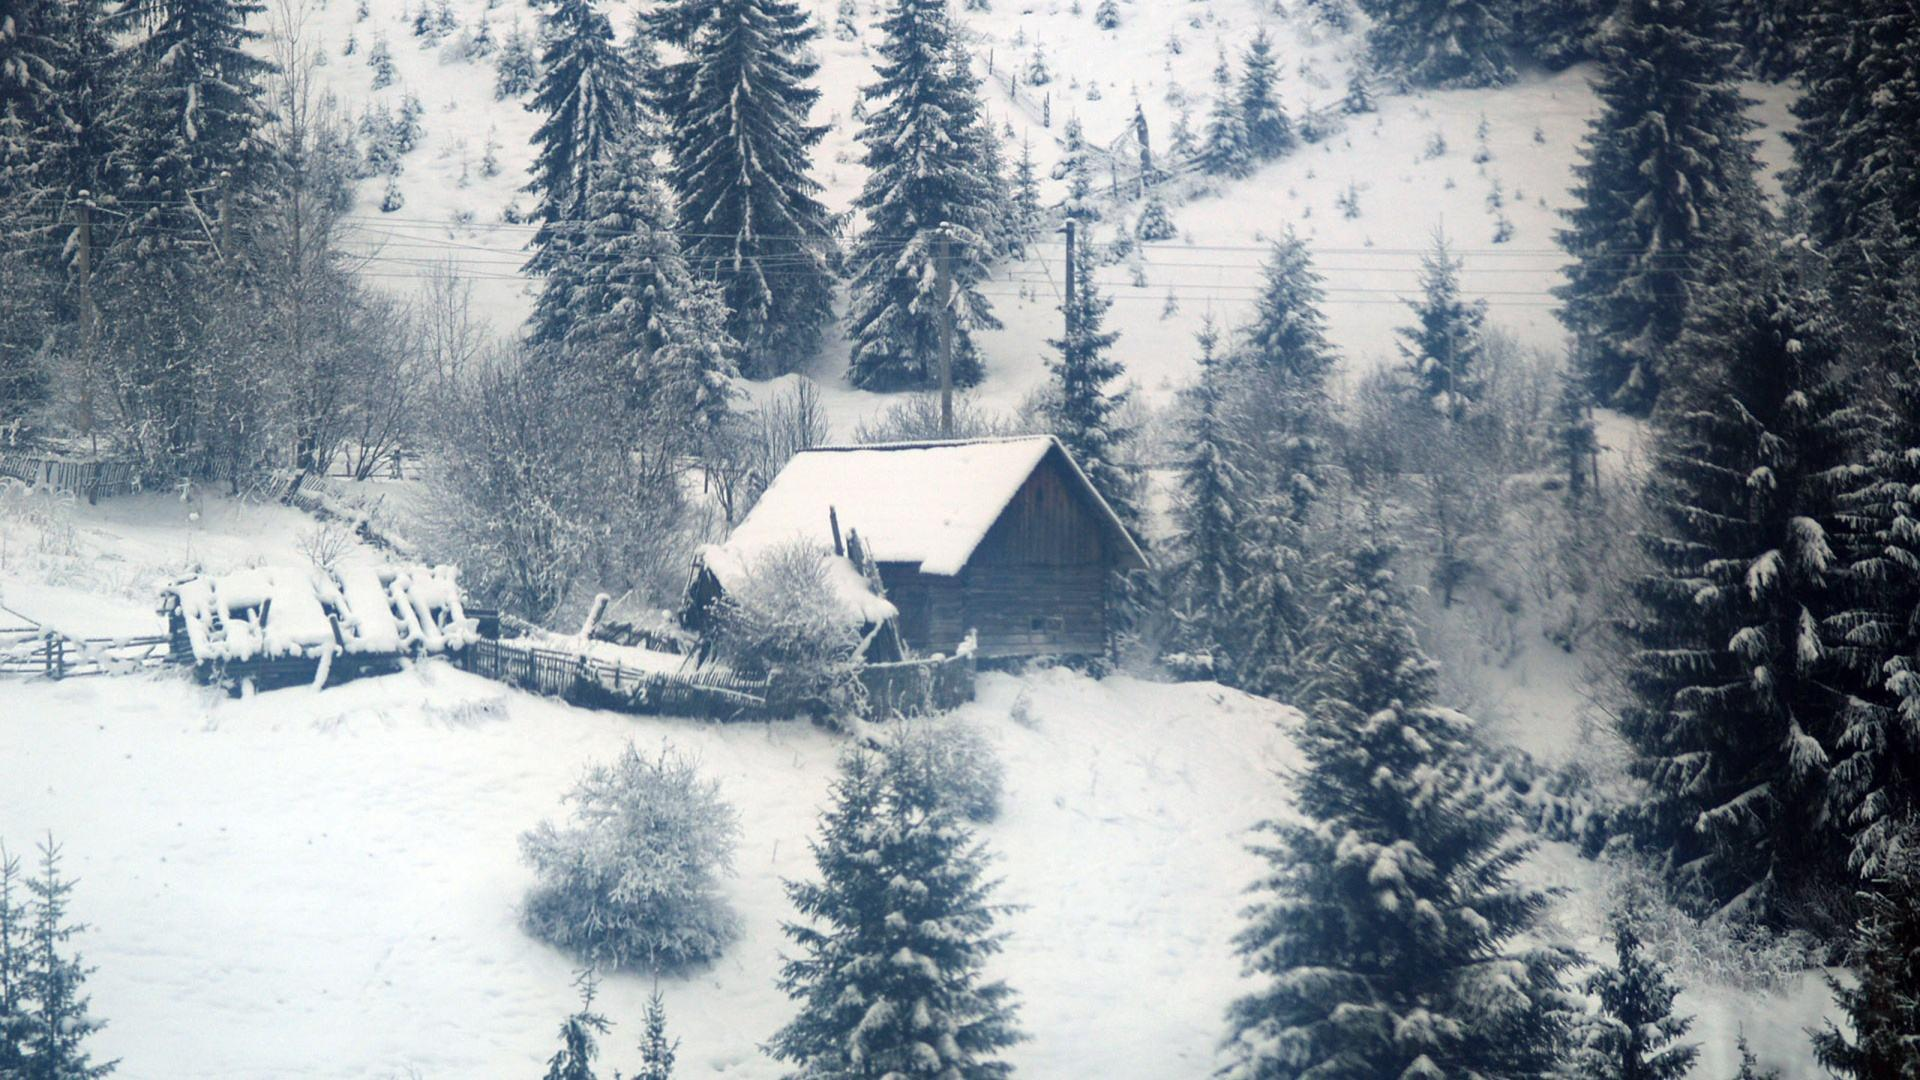 Simple Wallpaper Mac Winter - Qqz7uJW  You Should Have_567823.jpg